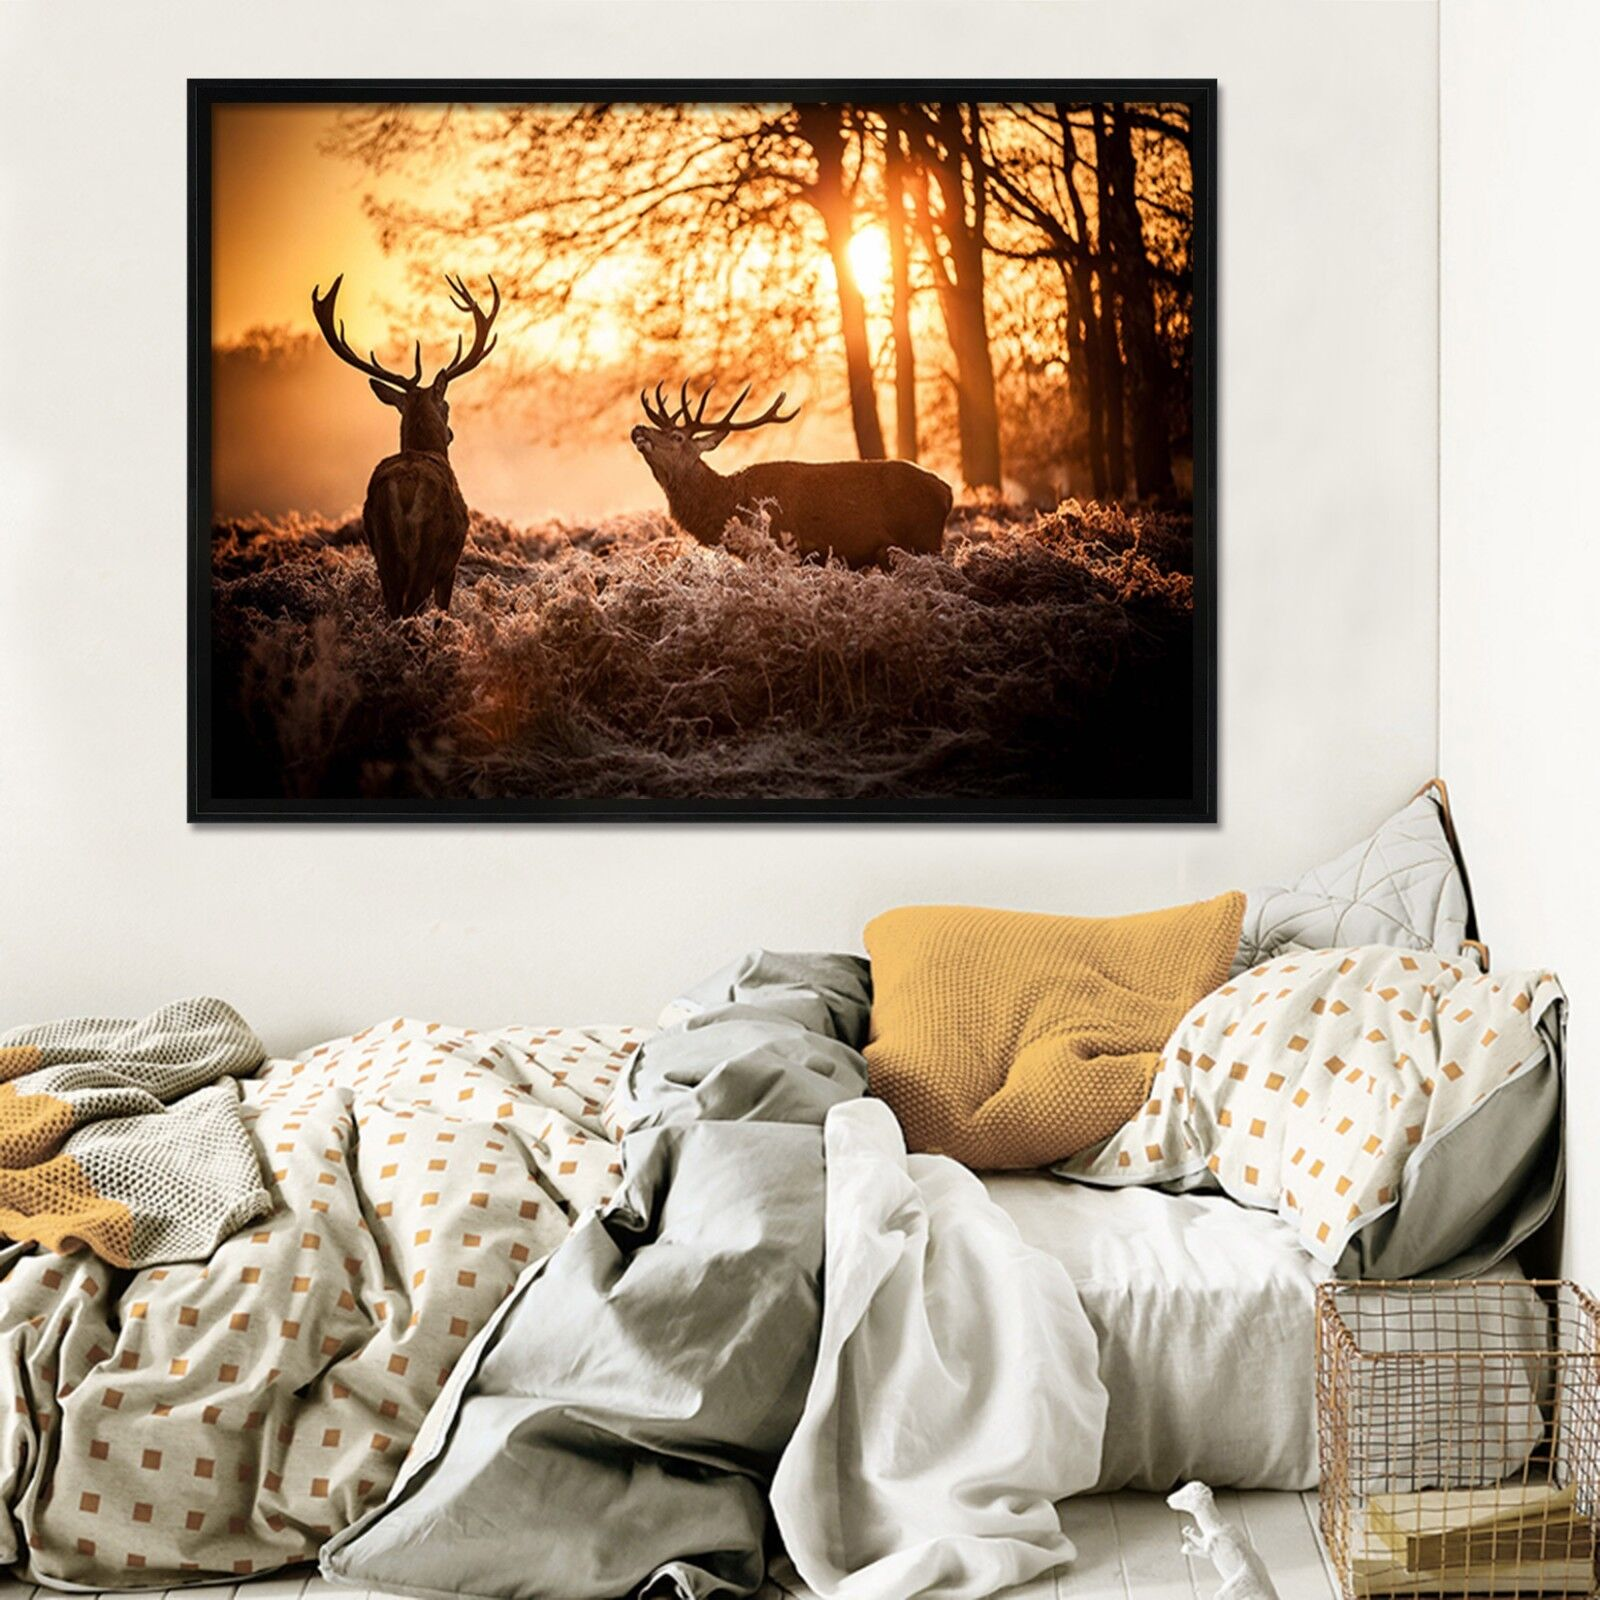 3D Woods Deer 46 Framed Poster Home Decor Print Painting Art AJ WALLPAPER UK